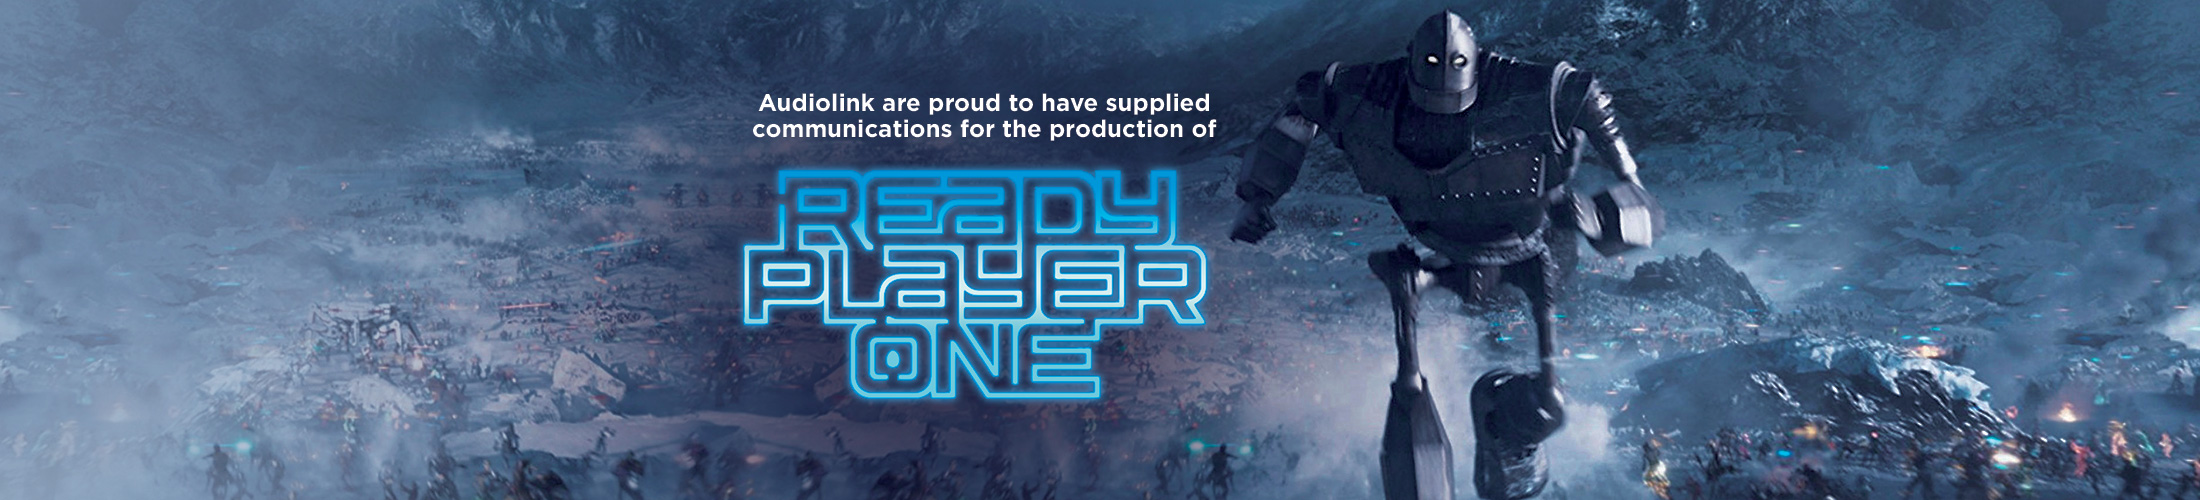 Ready Player One Hire Slider